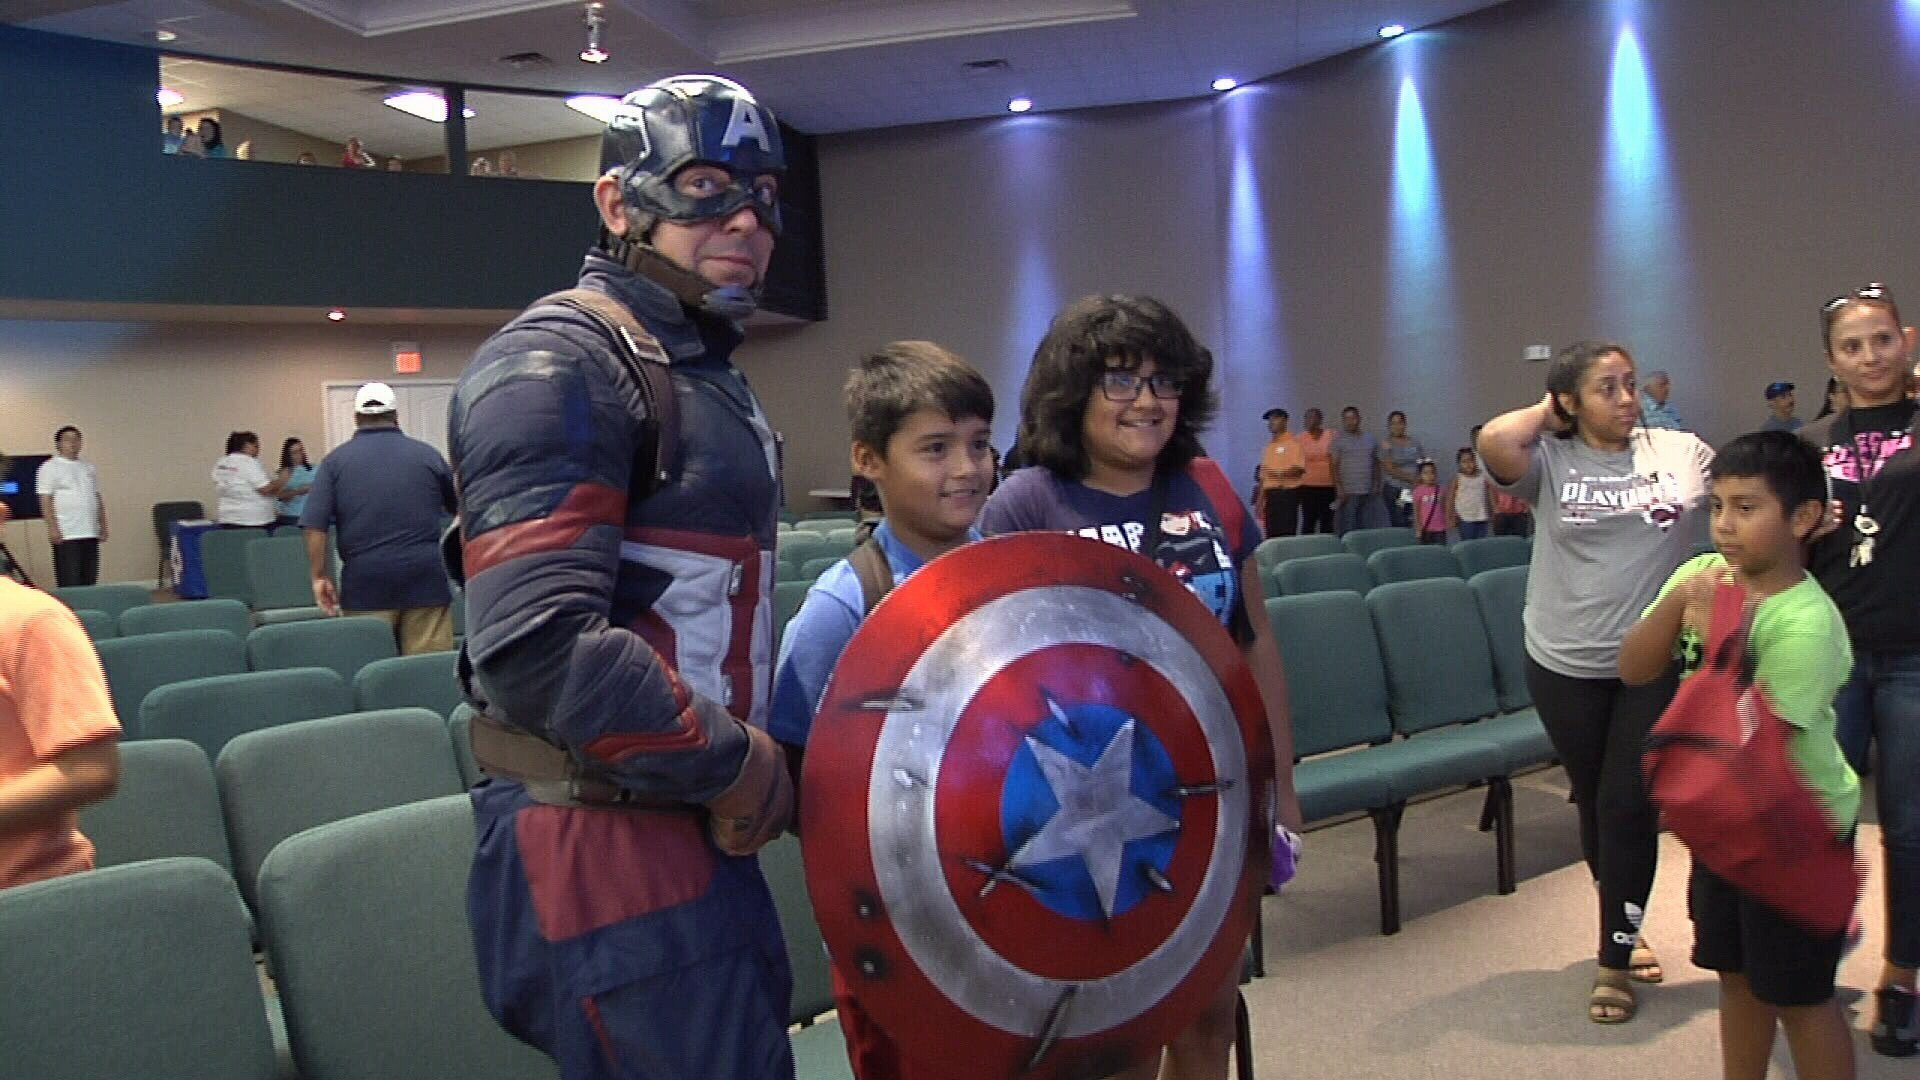 Even Captain America made an appearance at the event.